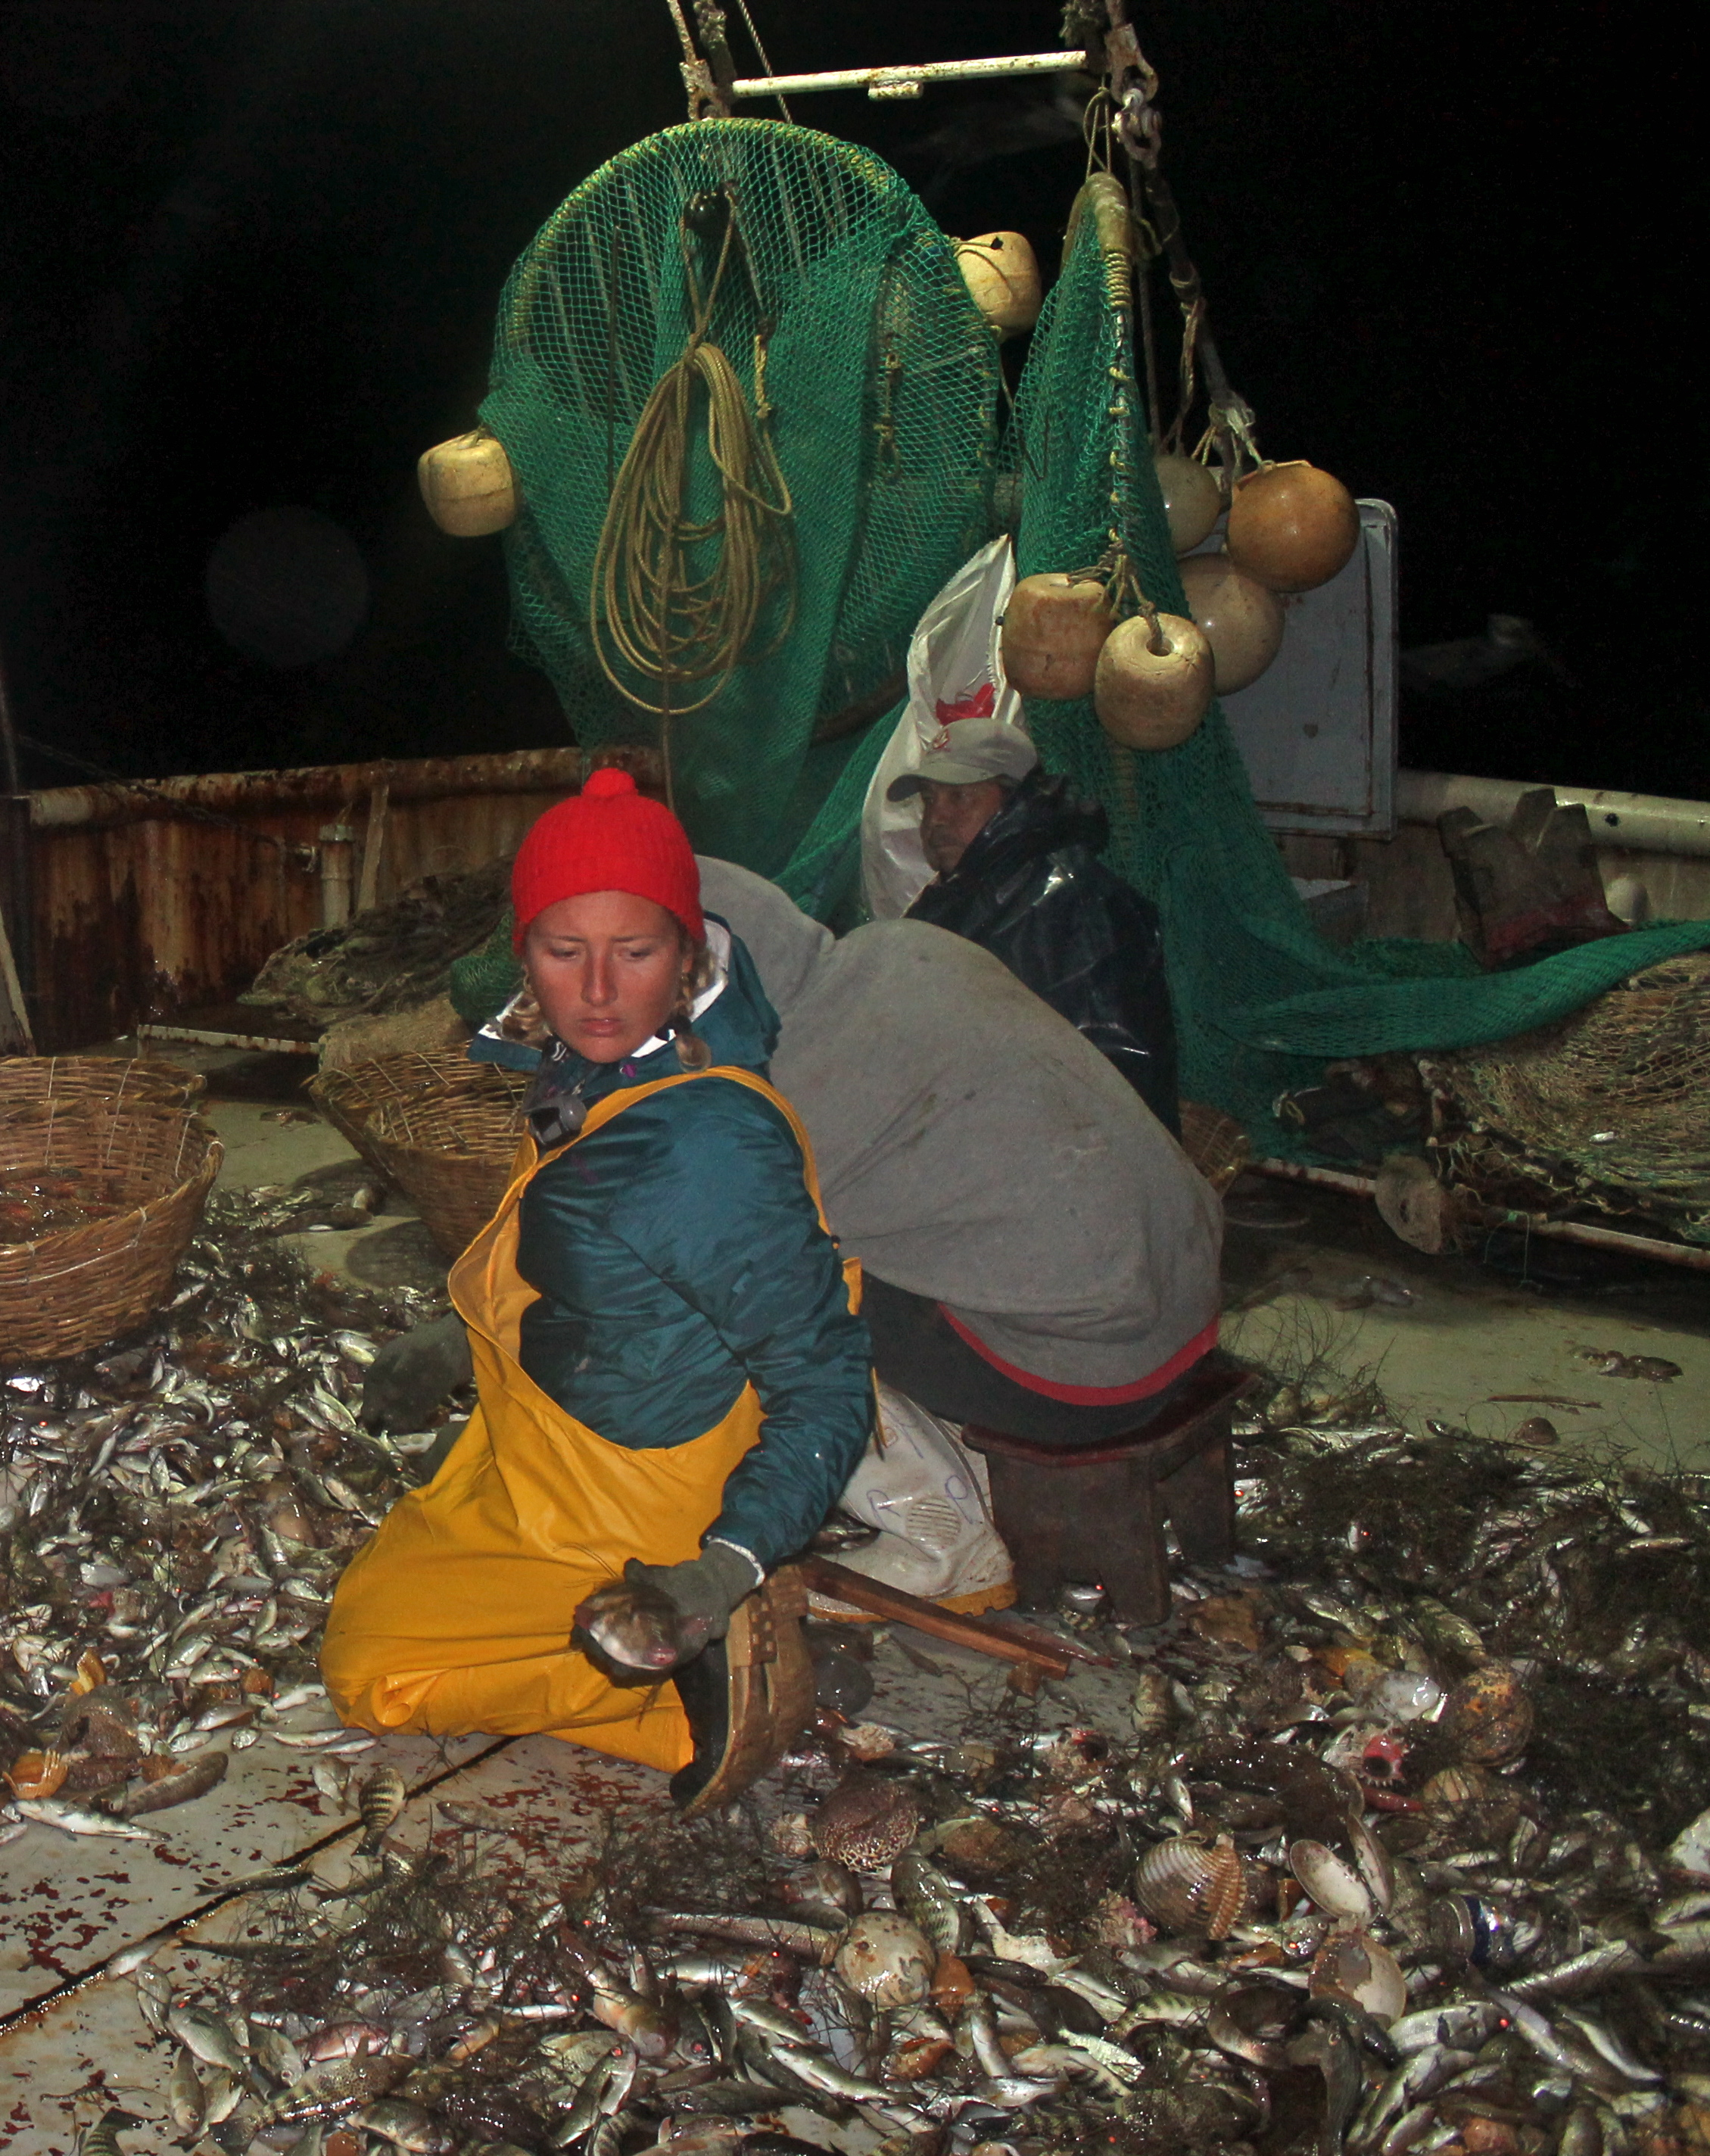 Ami working alongside fishermen on a shrimp trawler in the Gulf of California